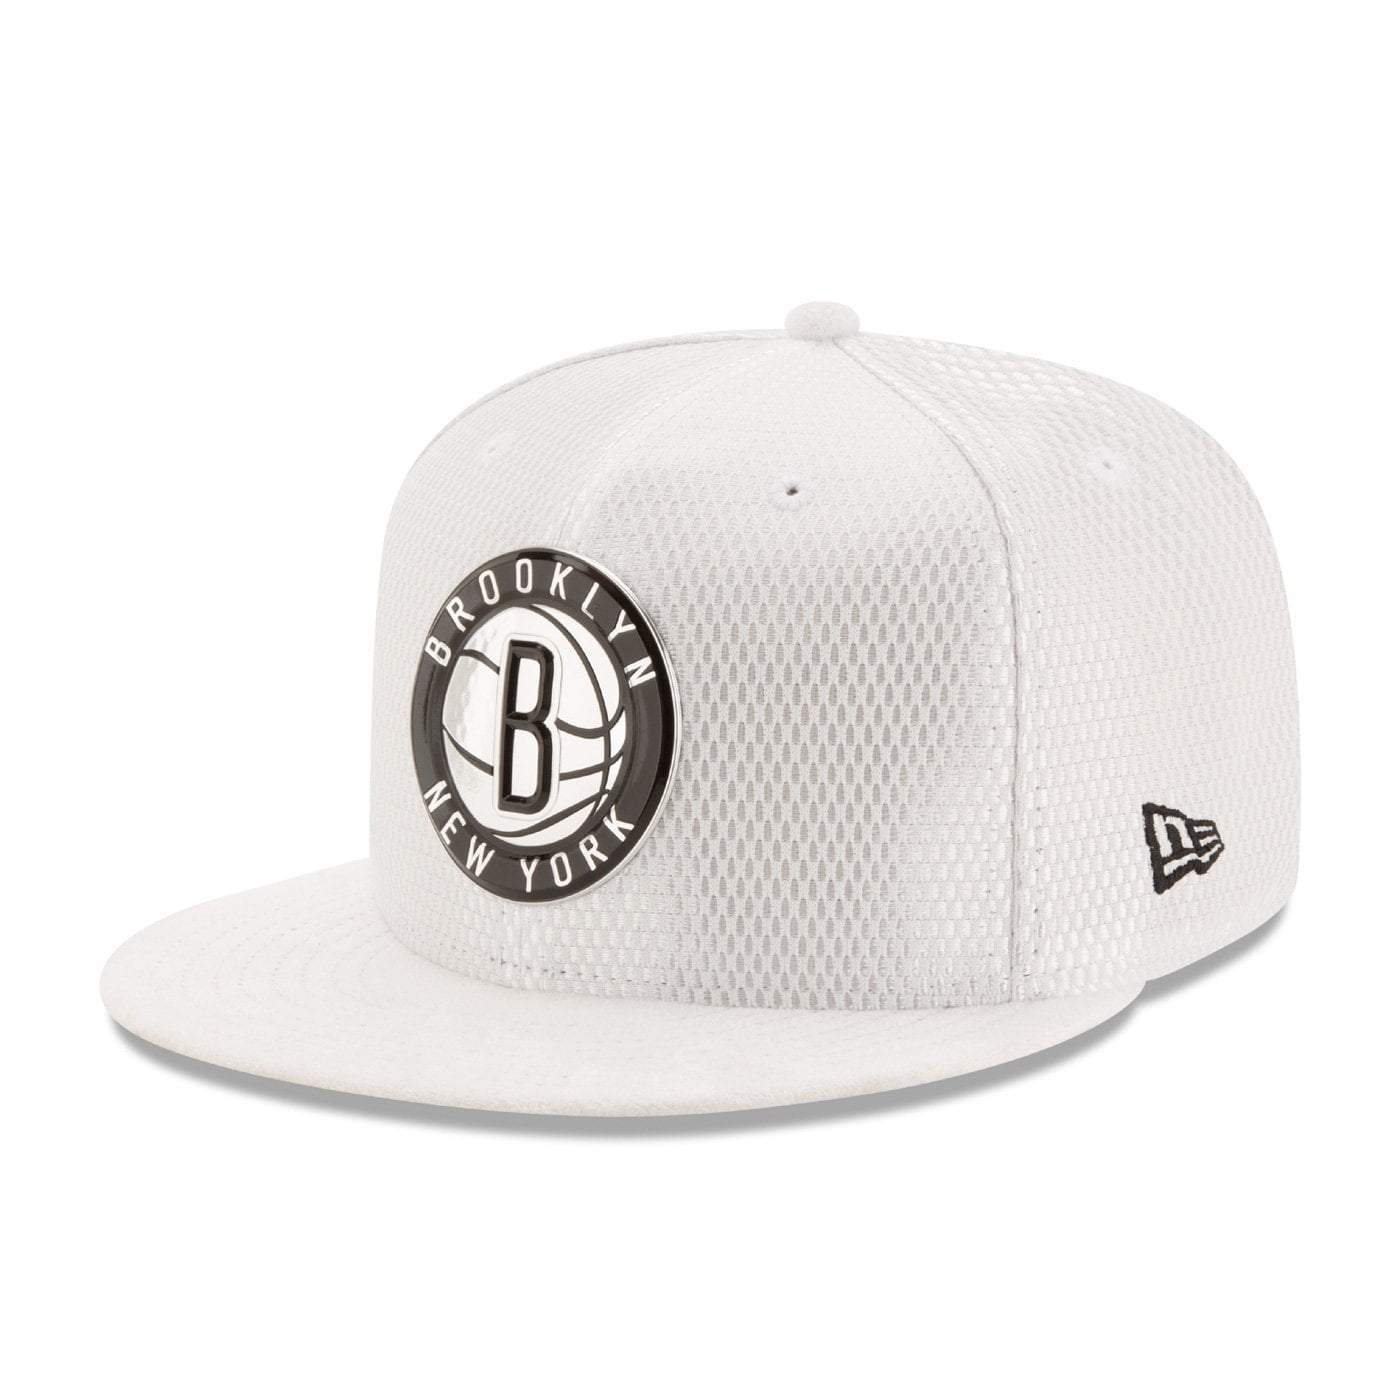 2a4f734f 59FIFTY On Court Fitted Cap